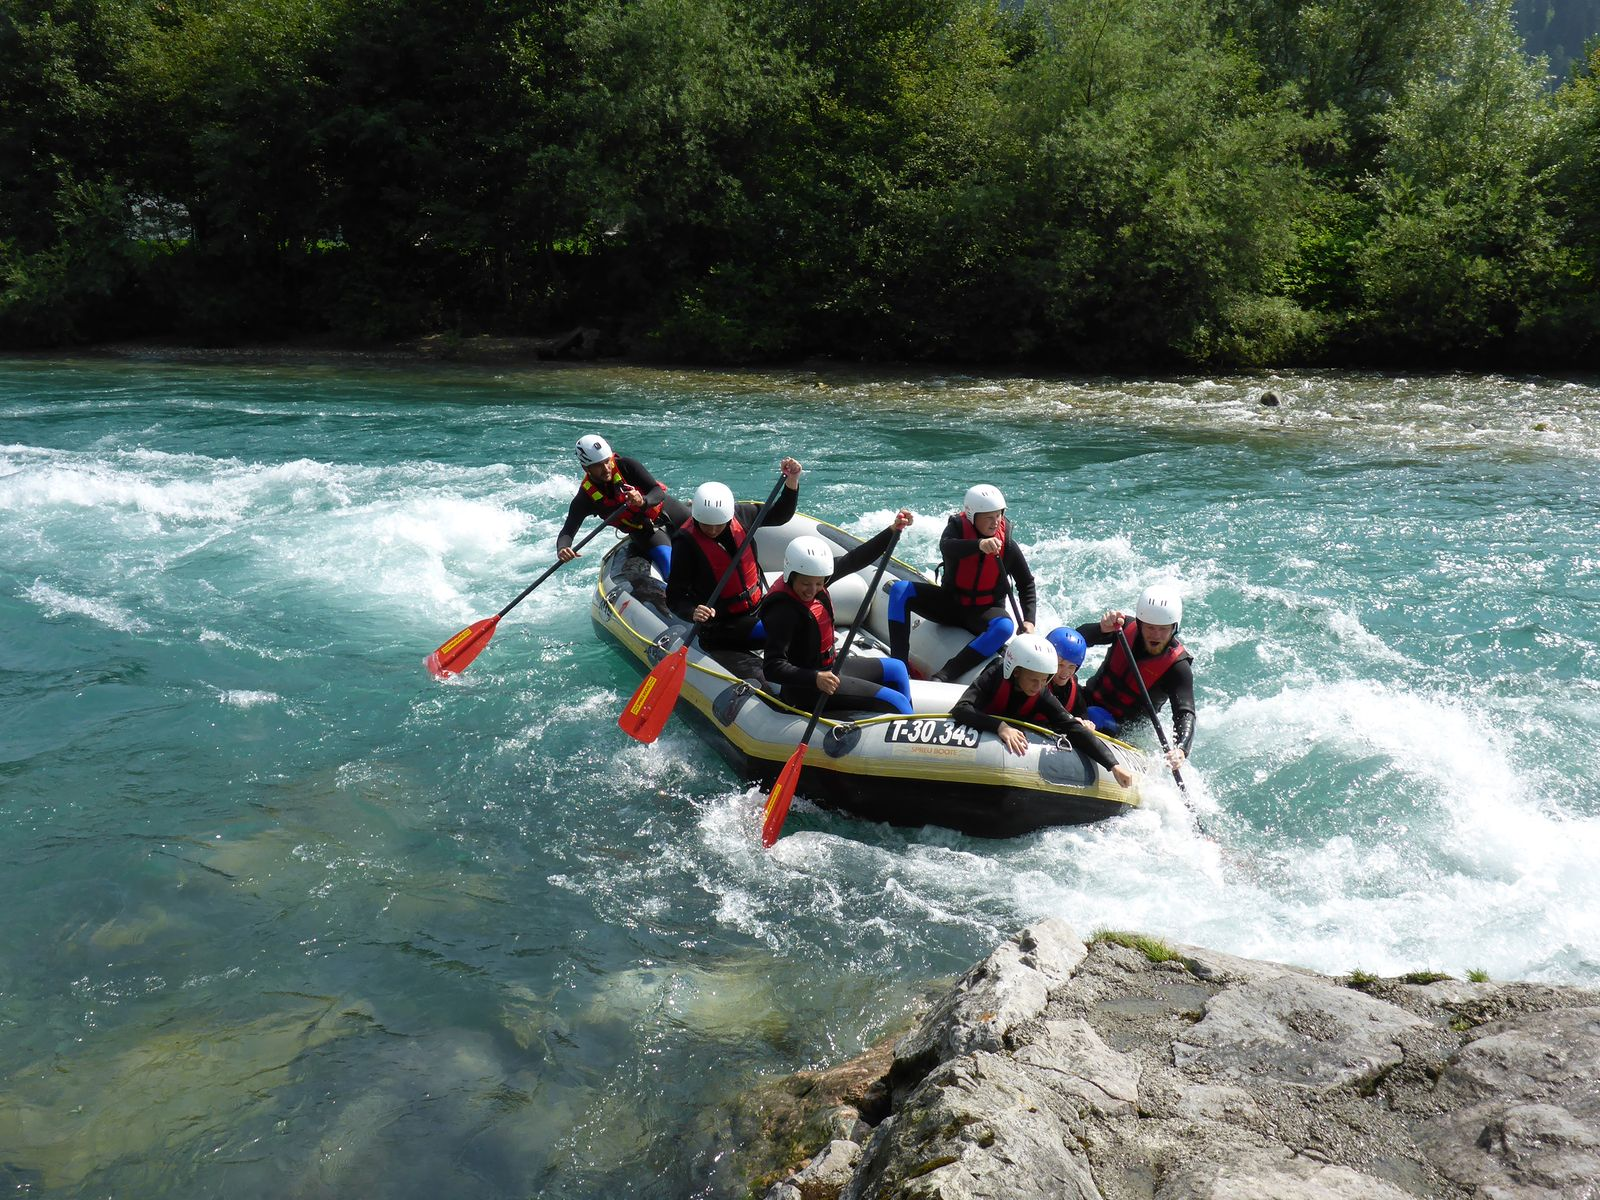 Rafting-Action © Andreas Monsberger